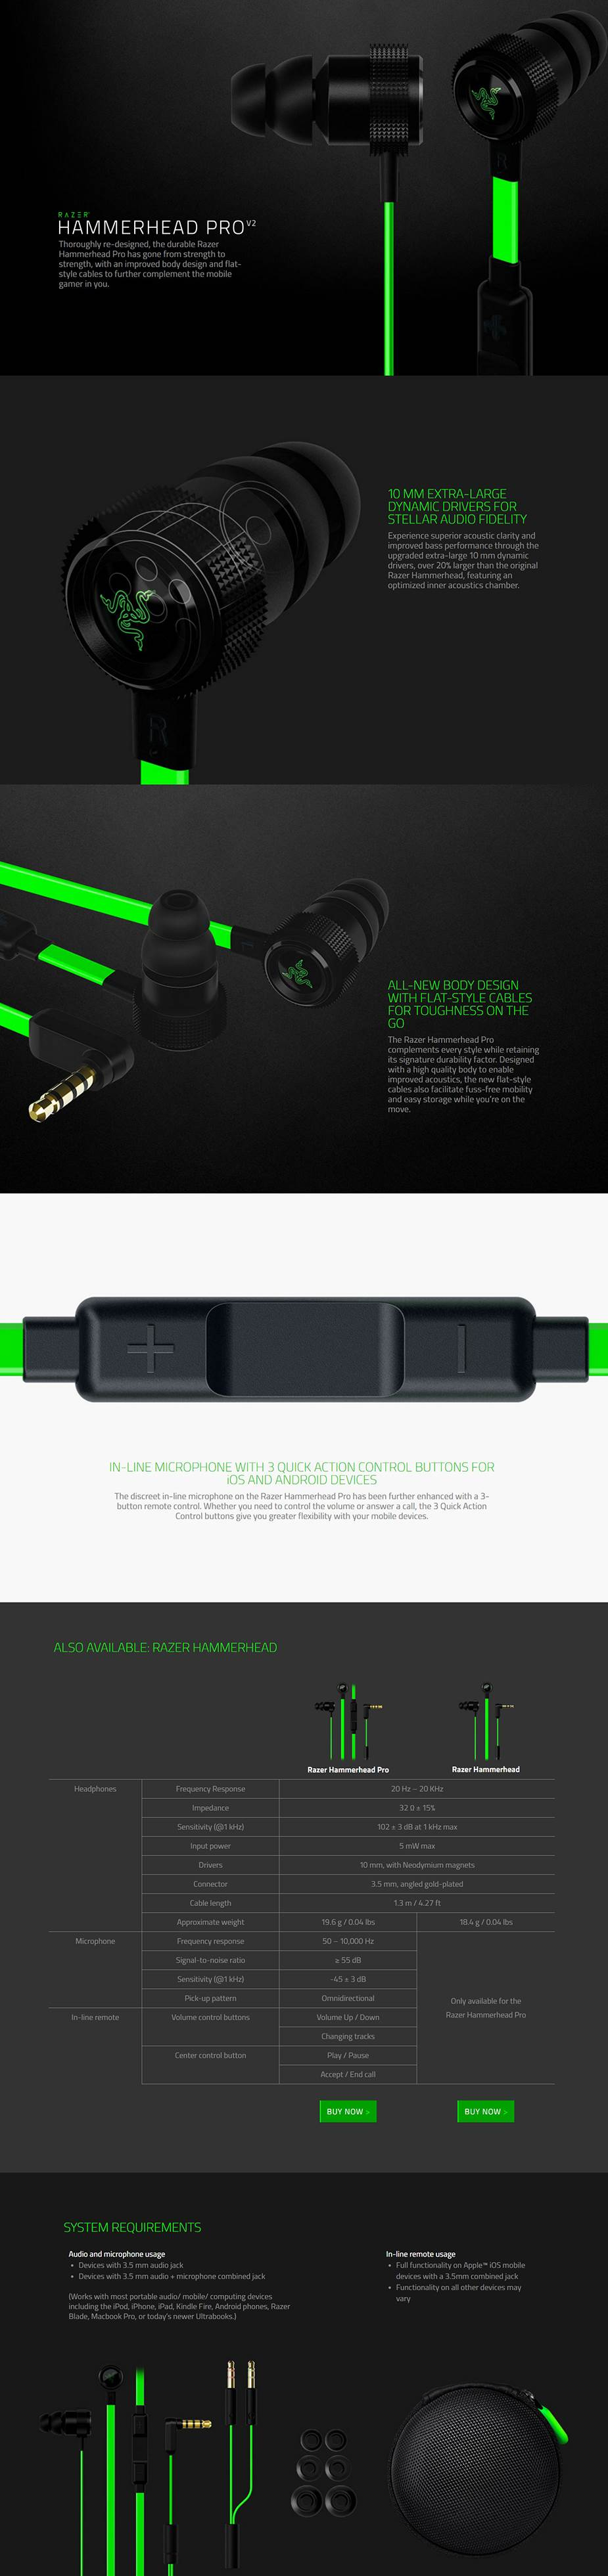 Razer Hammerhead Pro V2 Analog Gaming Music In Ear Headset Jw Thoroughly Re Designed The Durable Has Gone From Strength To With An Improved Body Design And Flat Style Cables Further